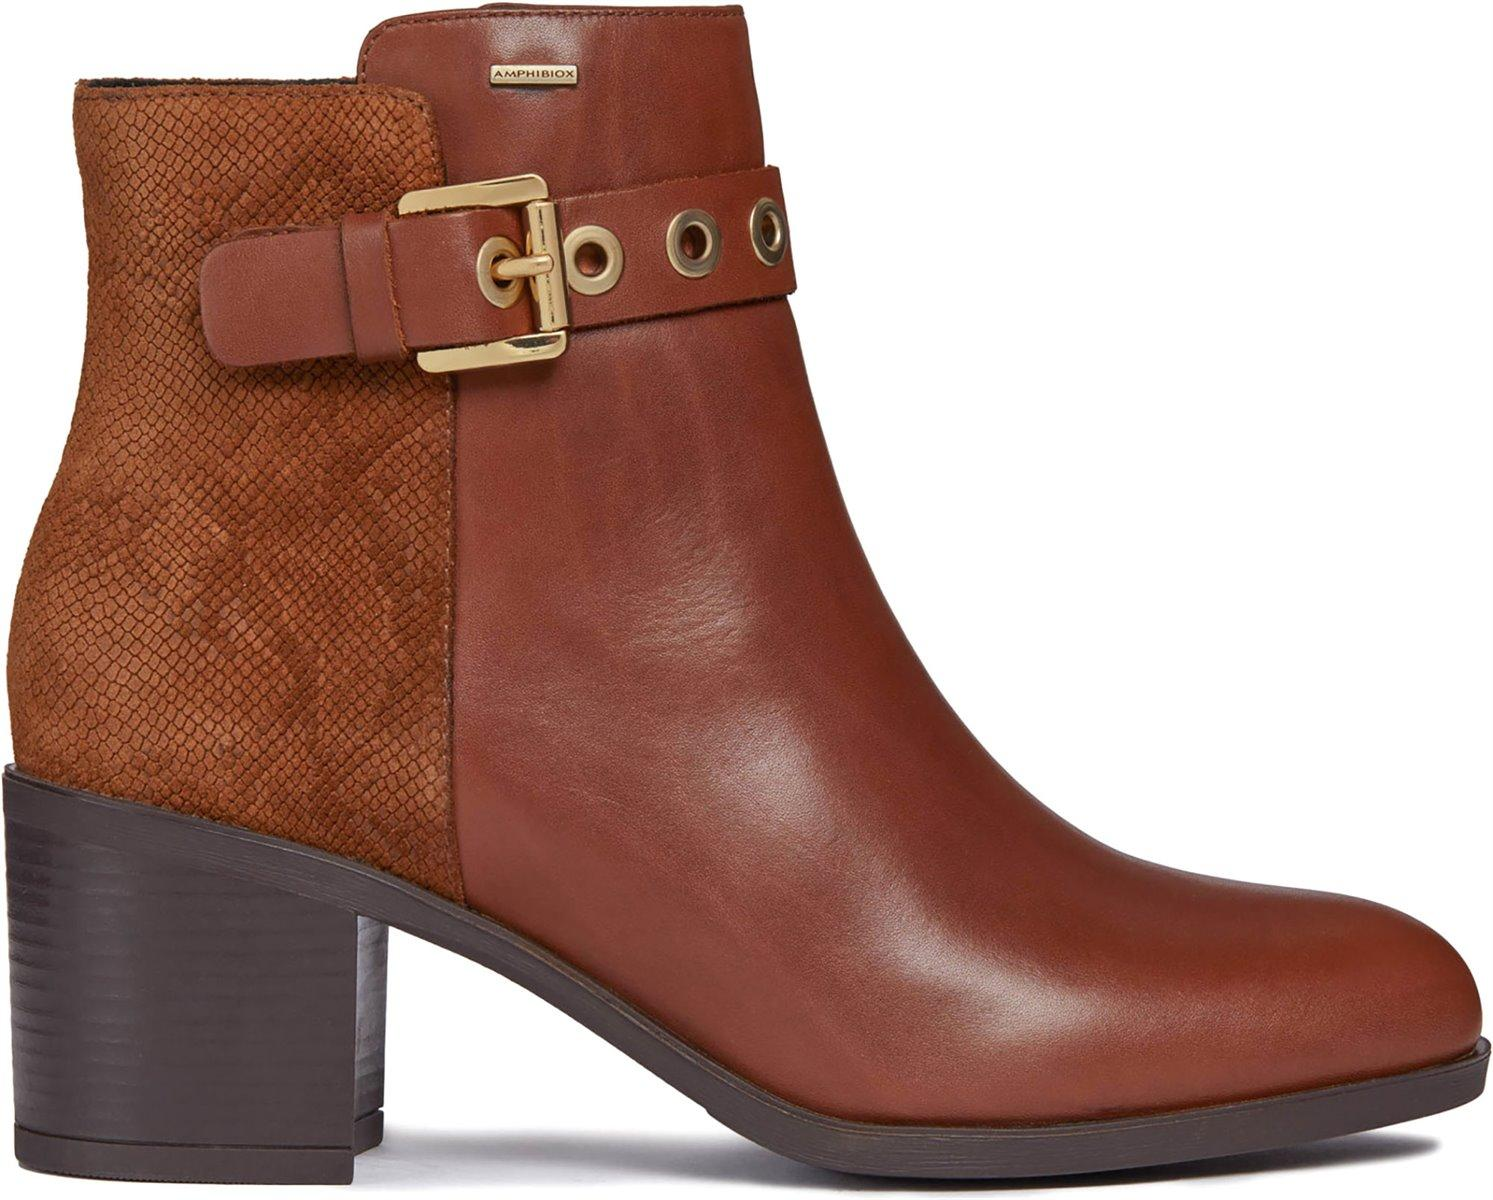 d3ede86739e Geox Glynna Np Abx in Brown - Lyst